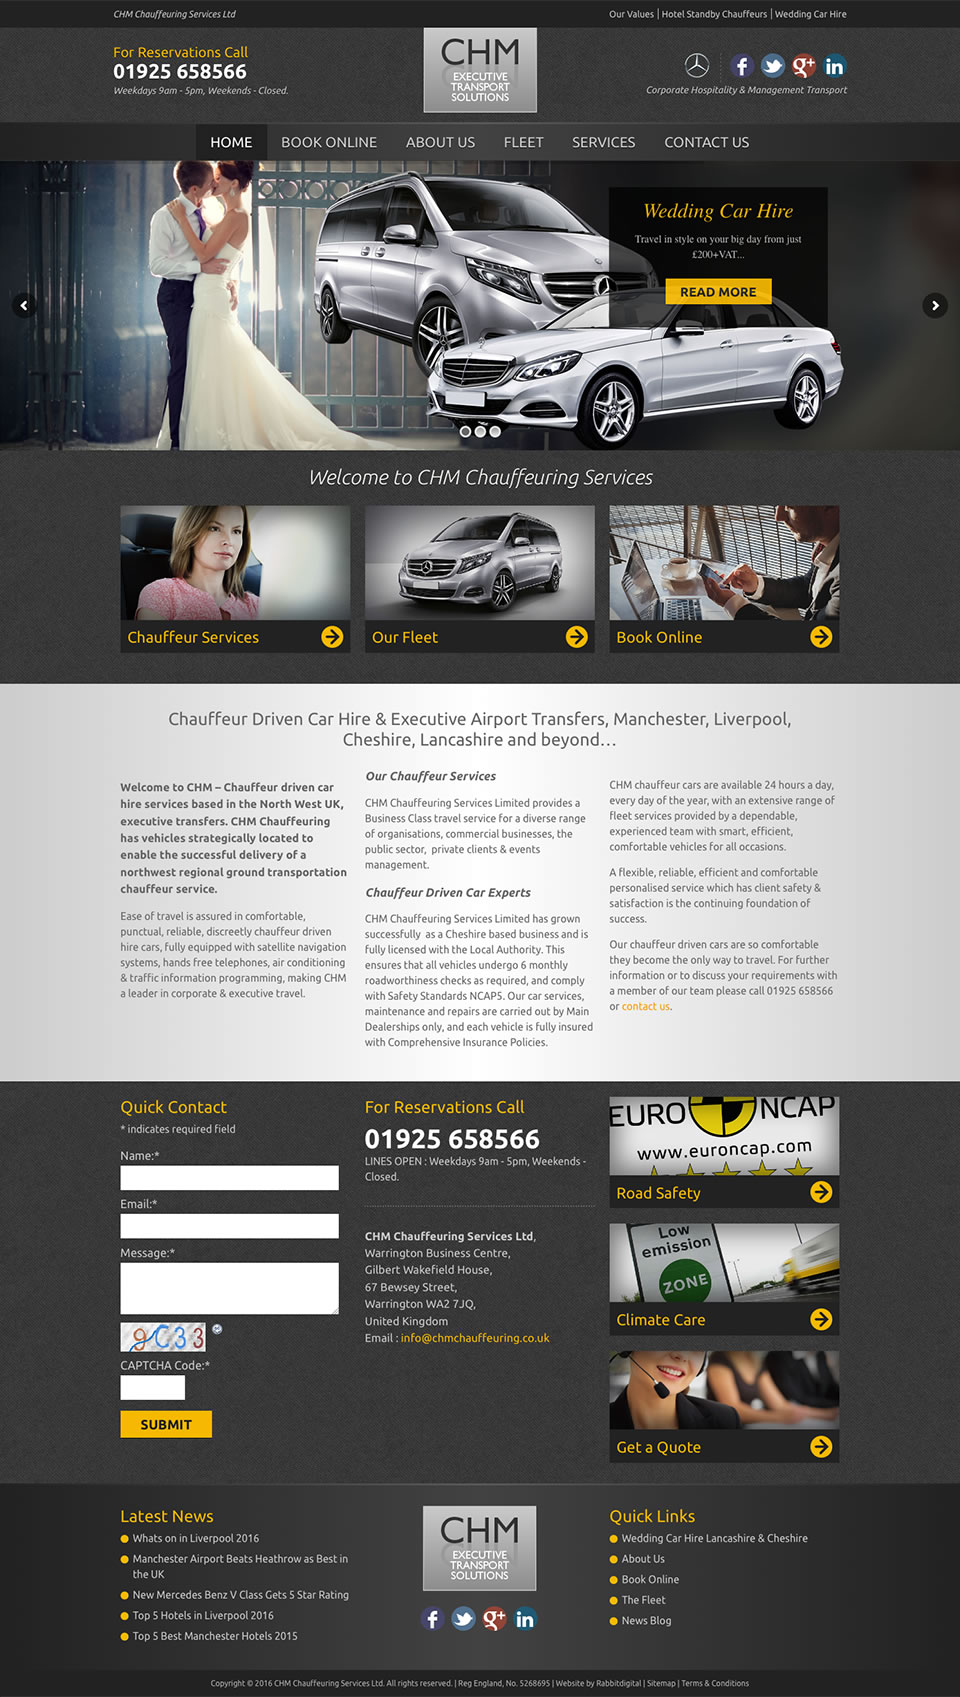 chm chauffeuring services website design